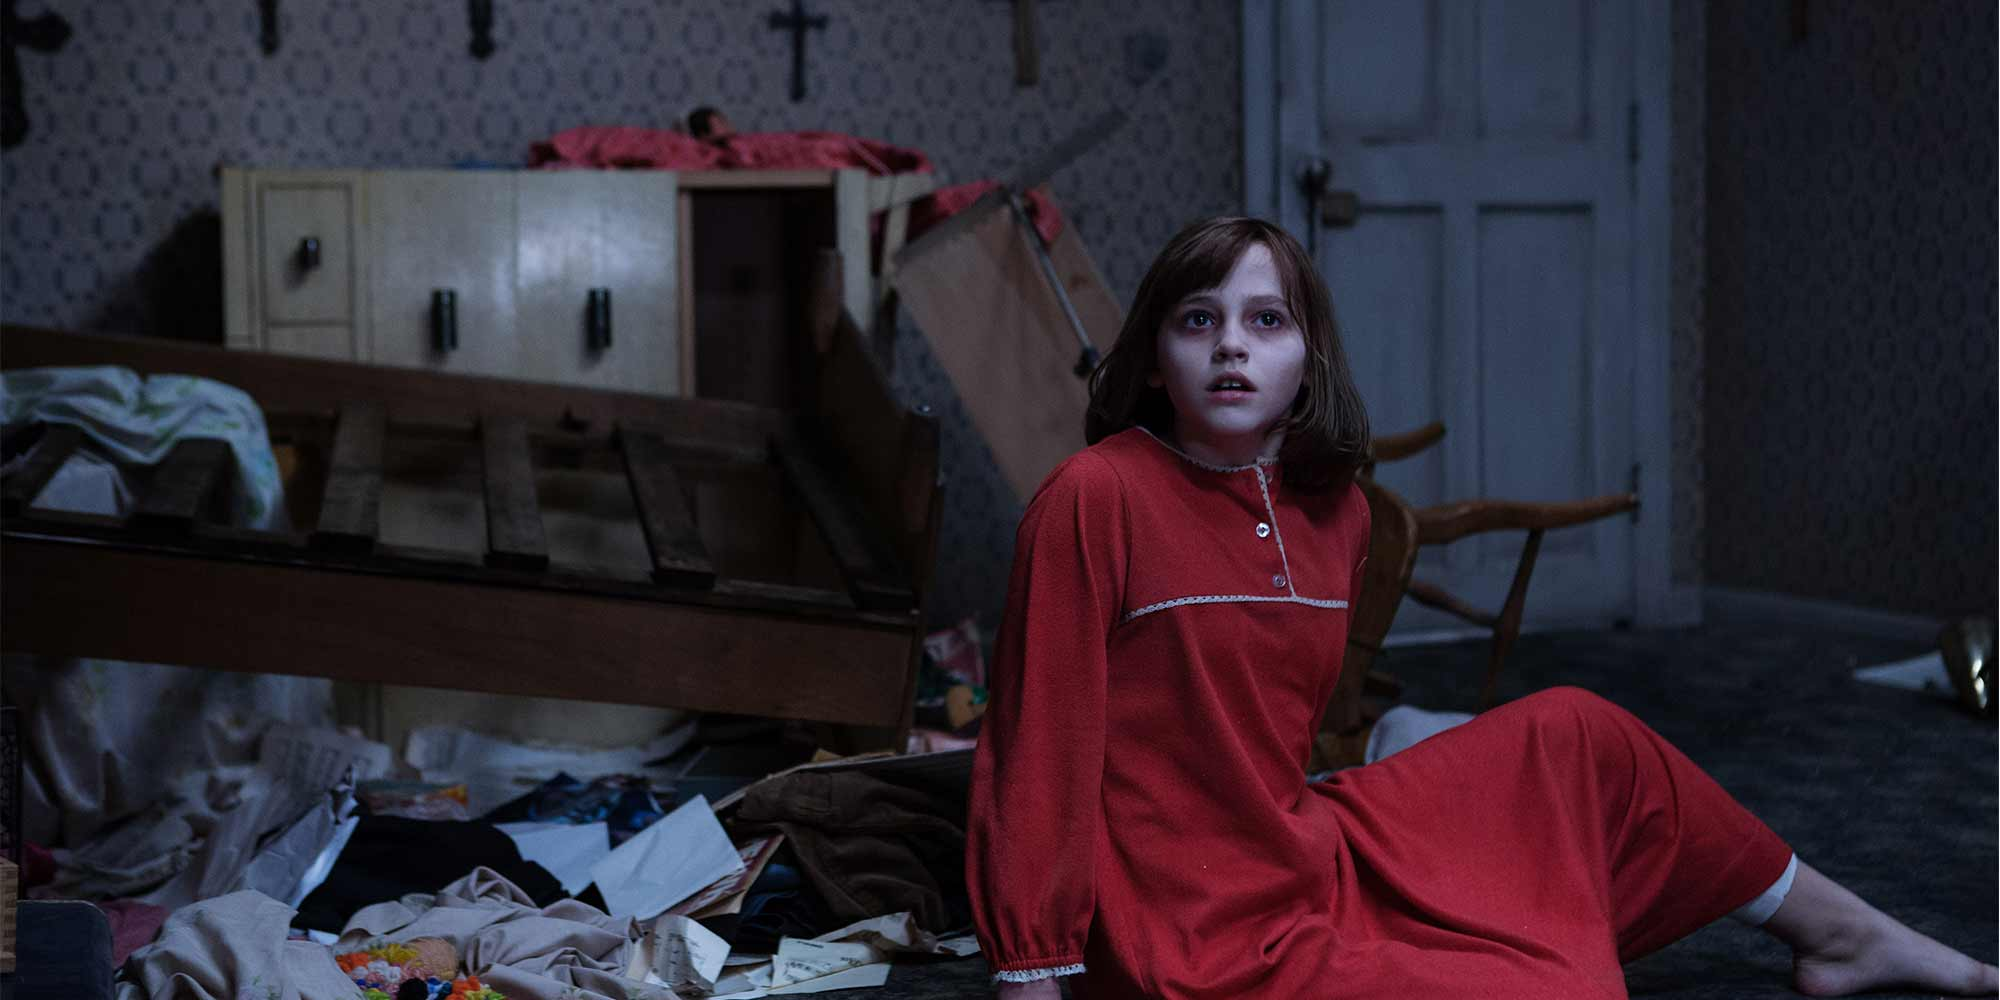 The Conjuring 2 - Header Image